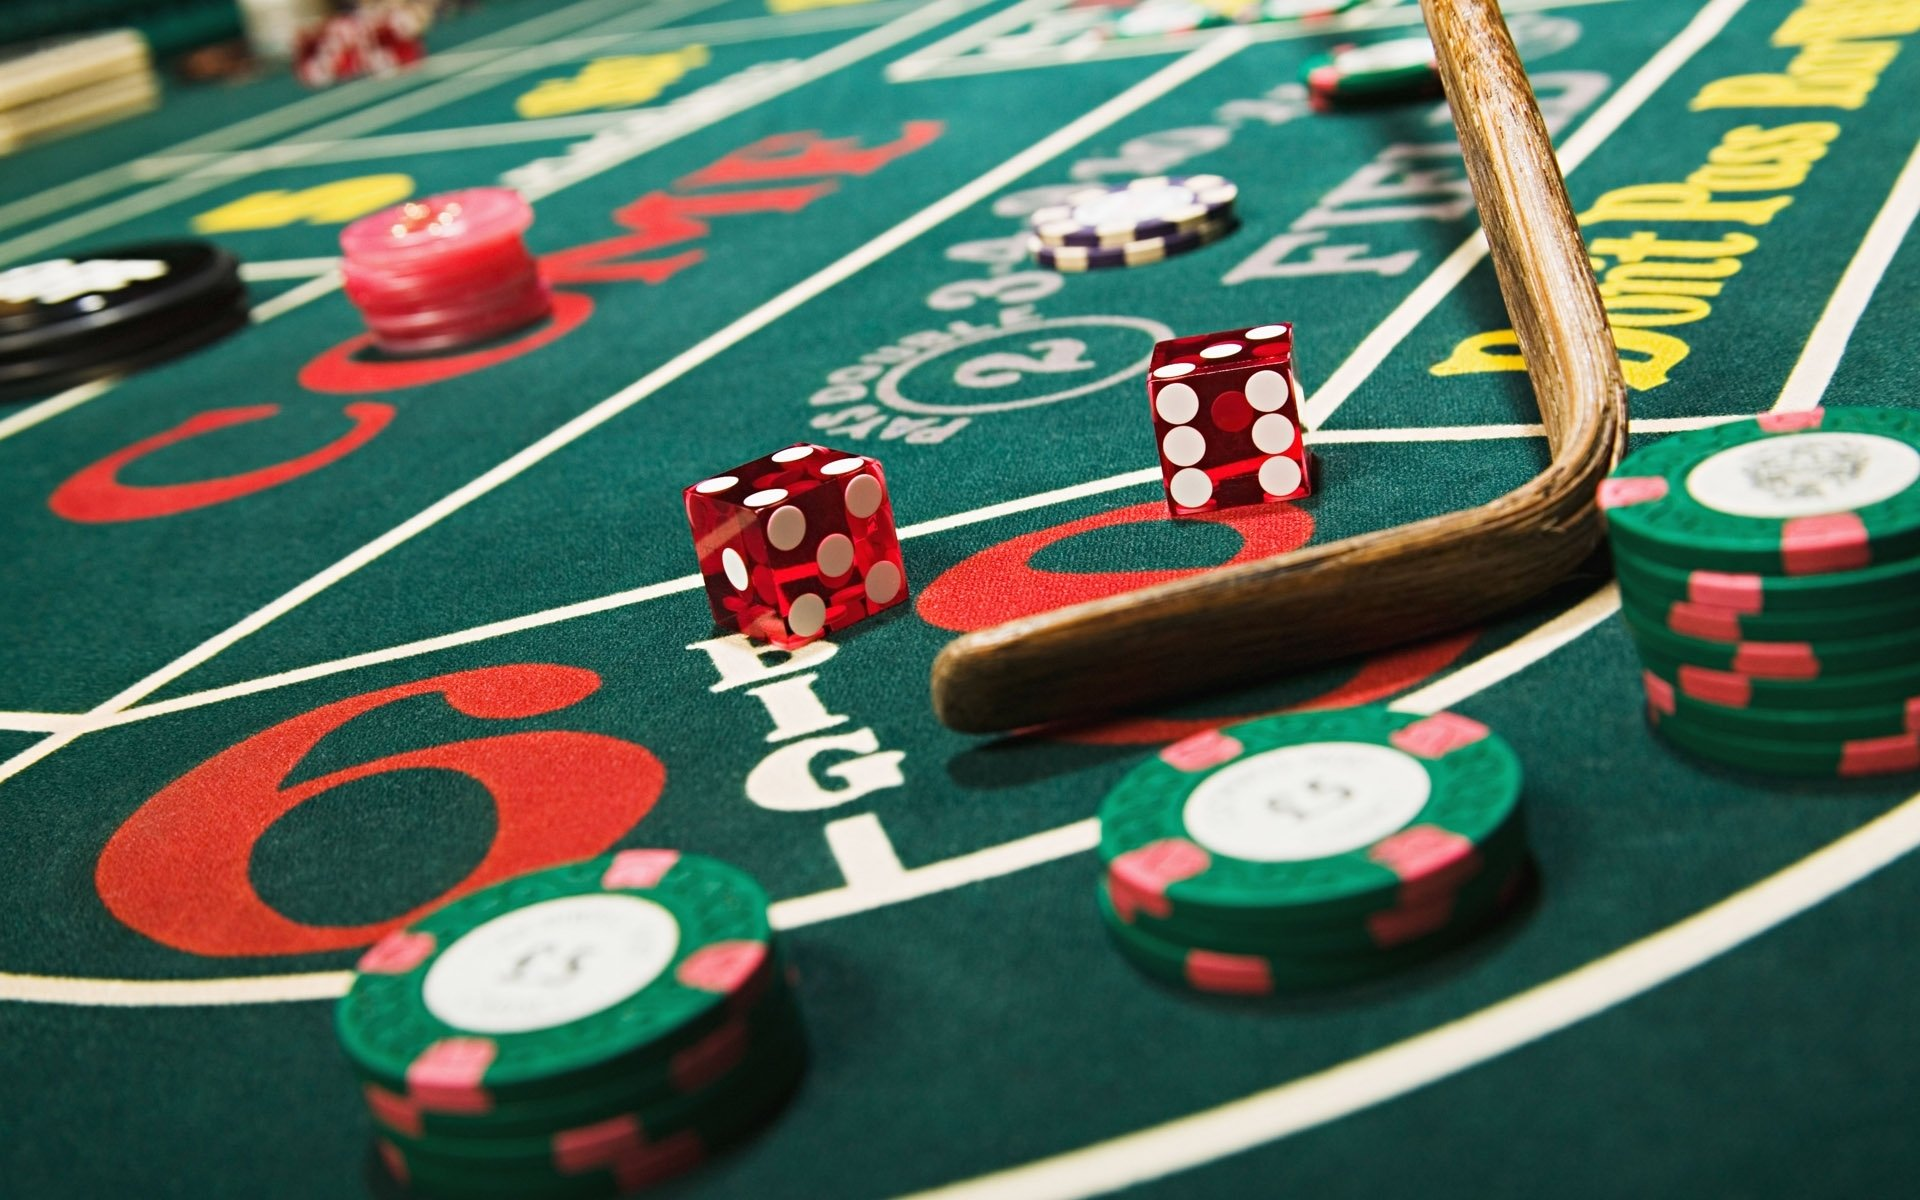 Order in the world of poker you need to have a strategy to succeed. Part 2